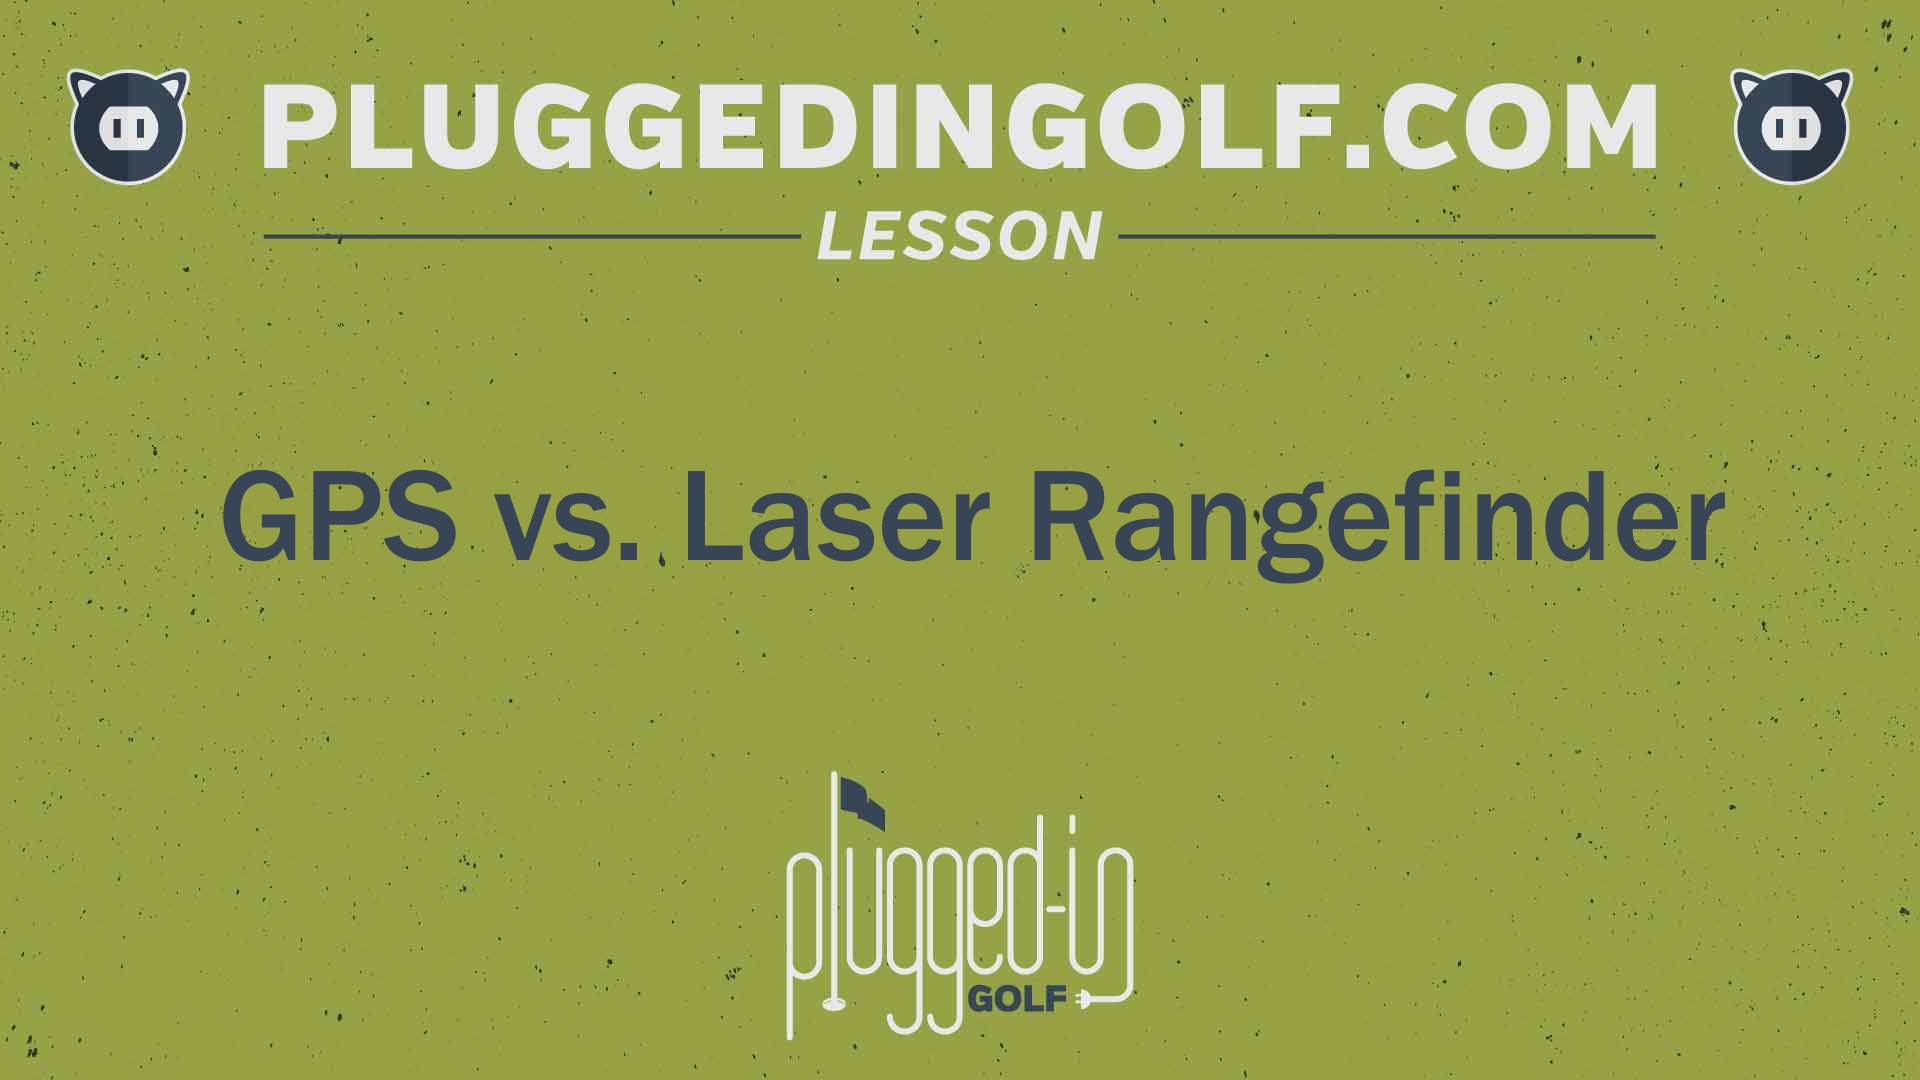 Golf GPS vs. Laser Rangefinder Buyer's Guide